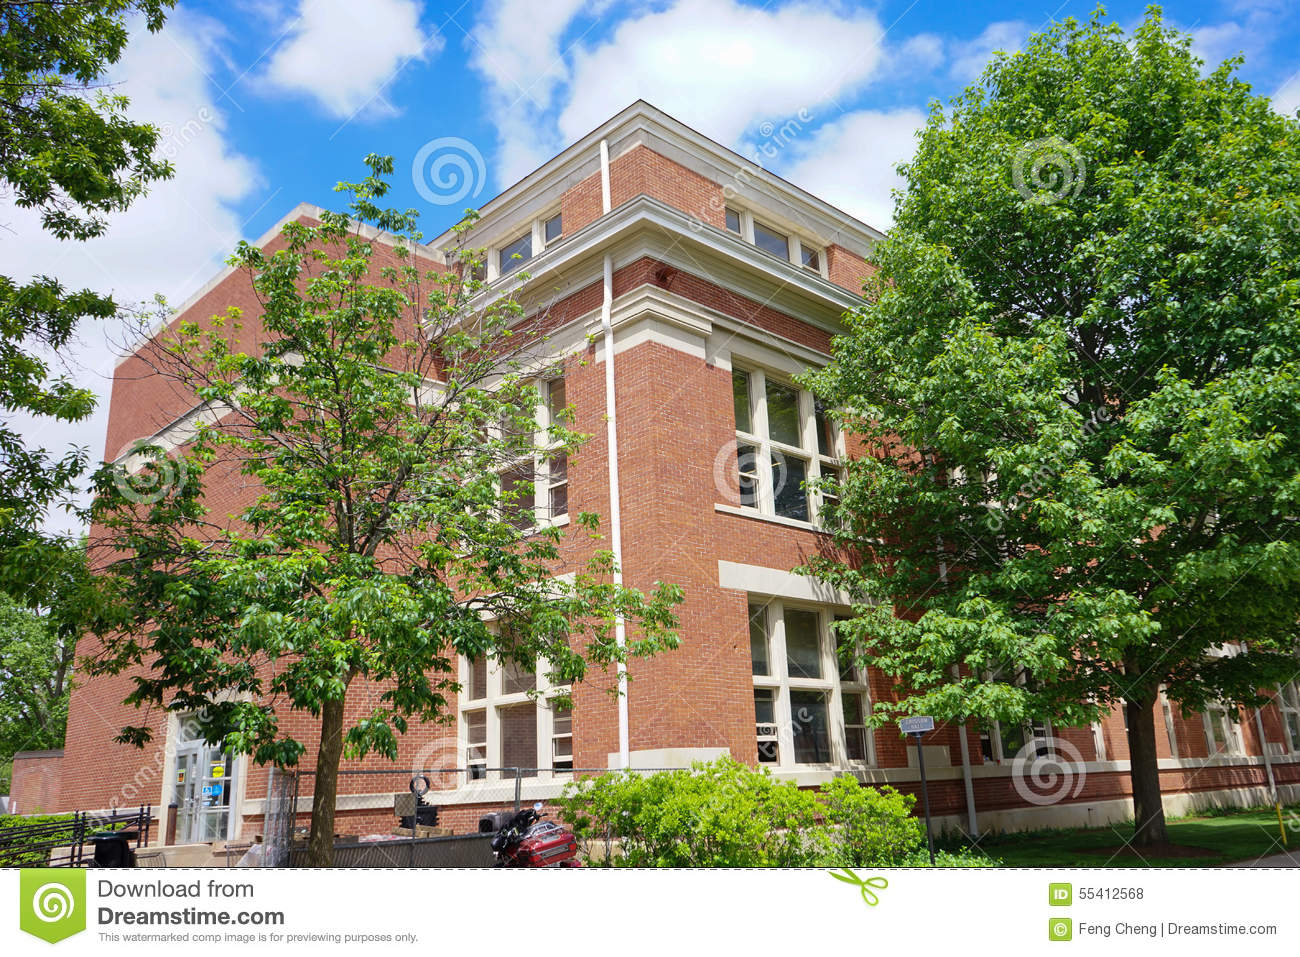 download purdue university campus stock photo image of entrance 55412568